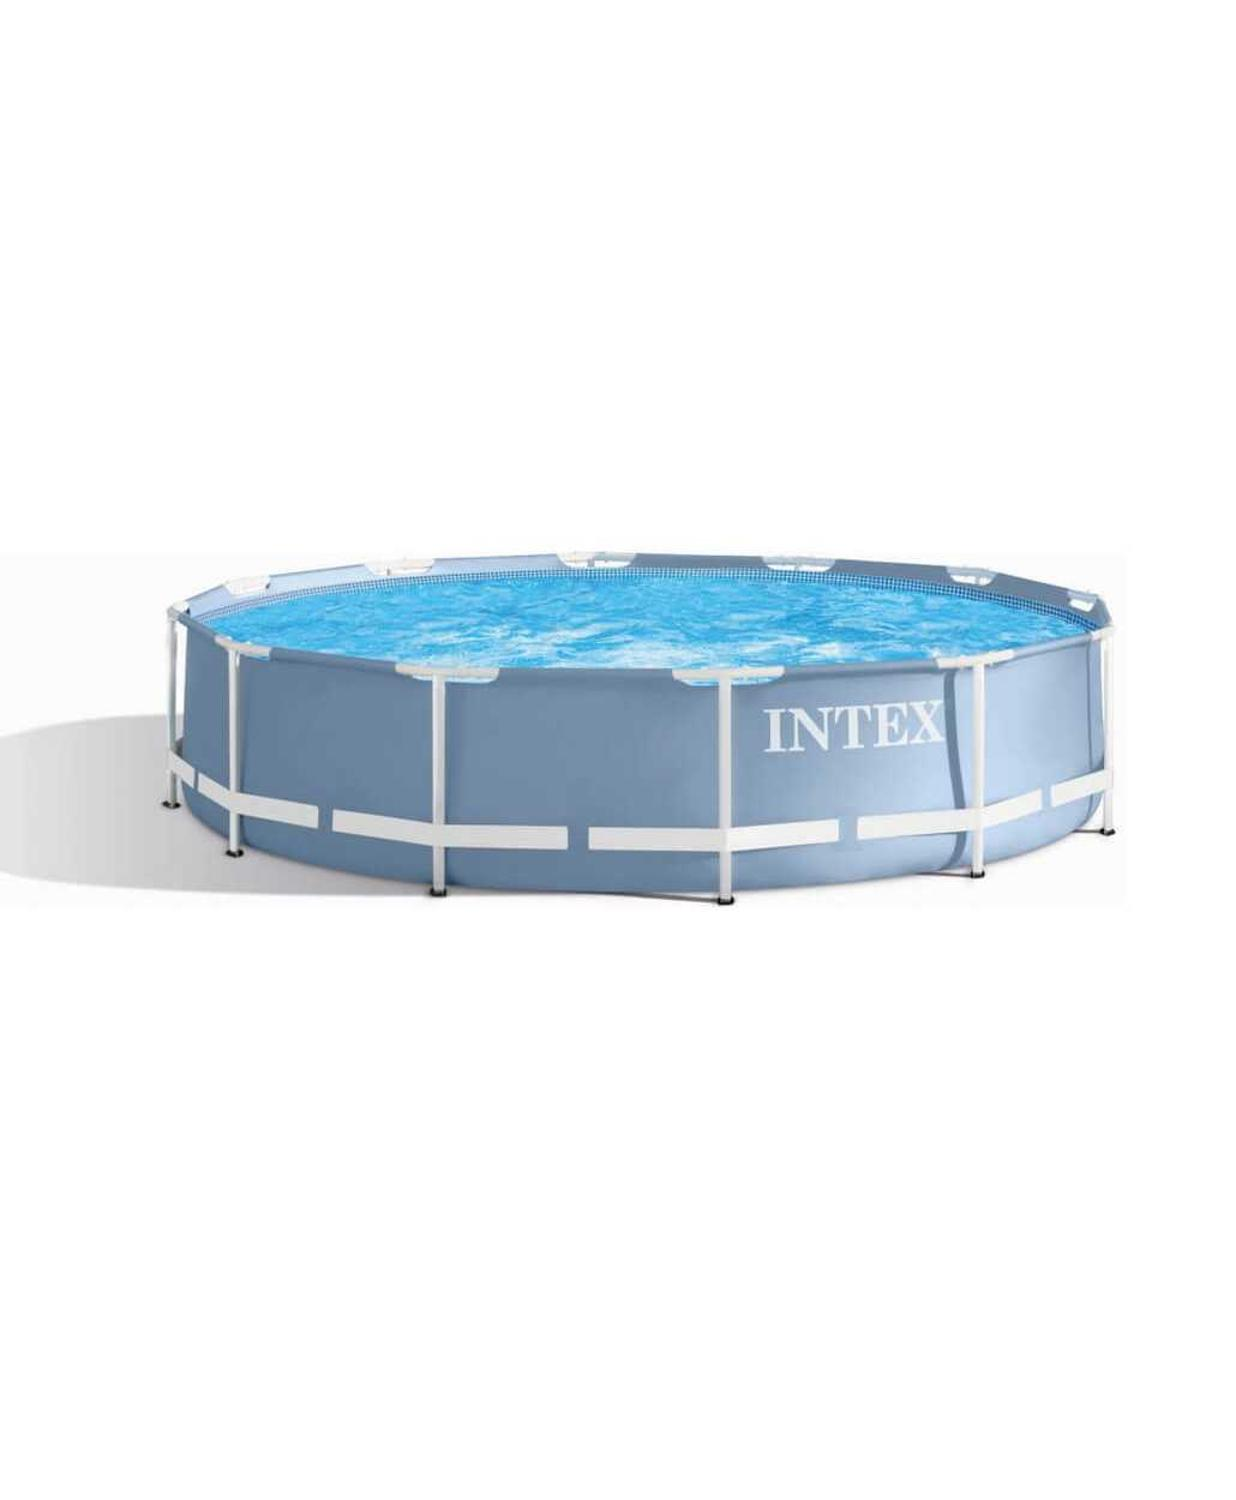 Scaffold Round Swimming Pool Summer Outdoor 366x76 Cm, 6503 L, Intex Prism Frame, Blue, Item No. 28710